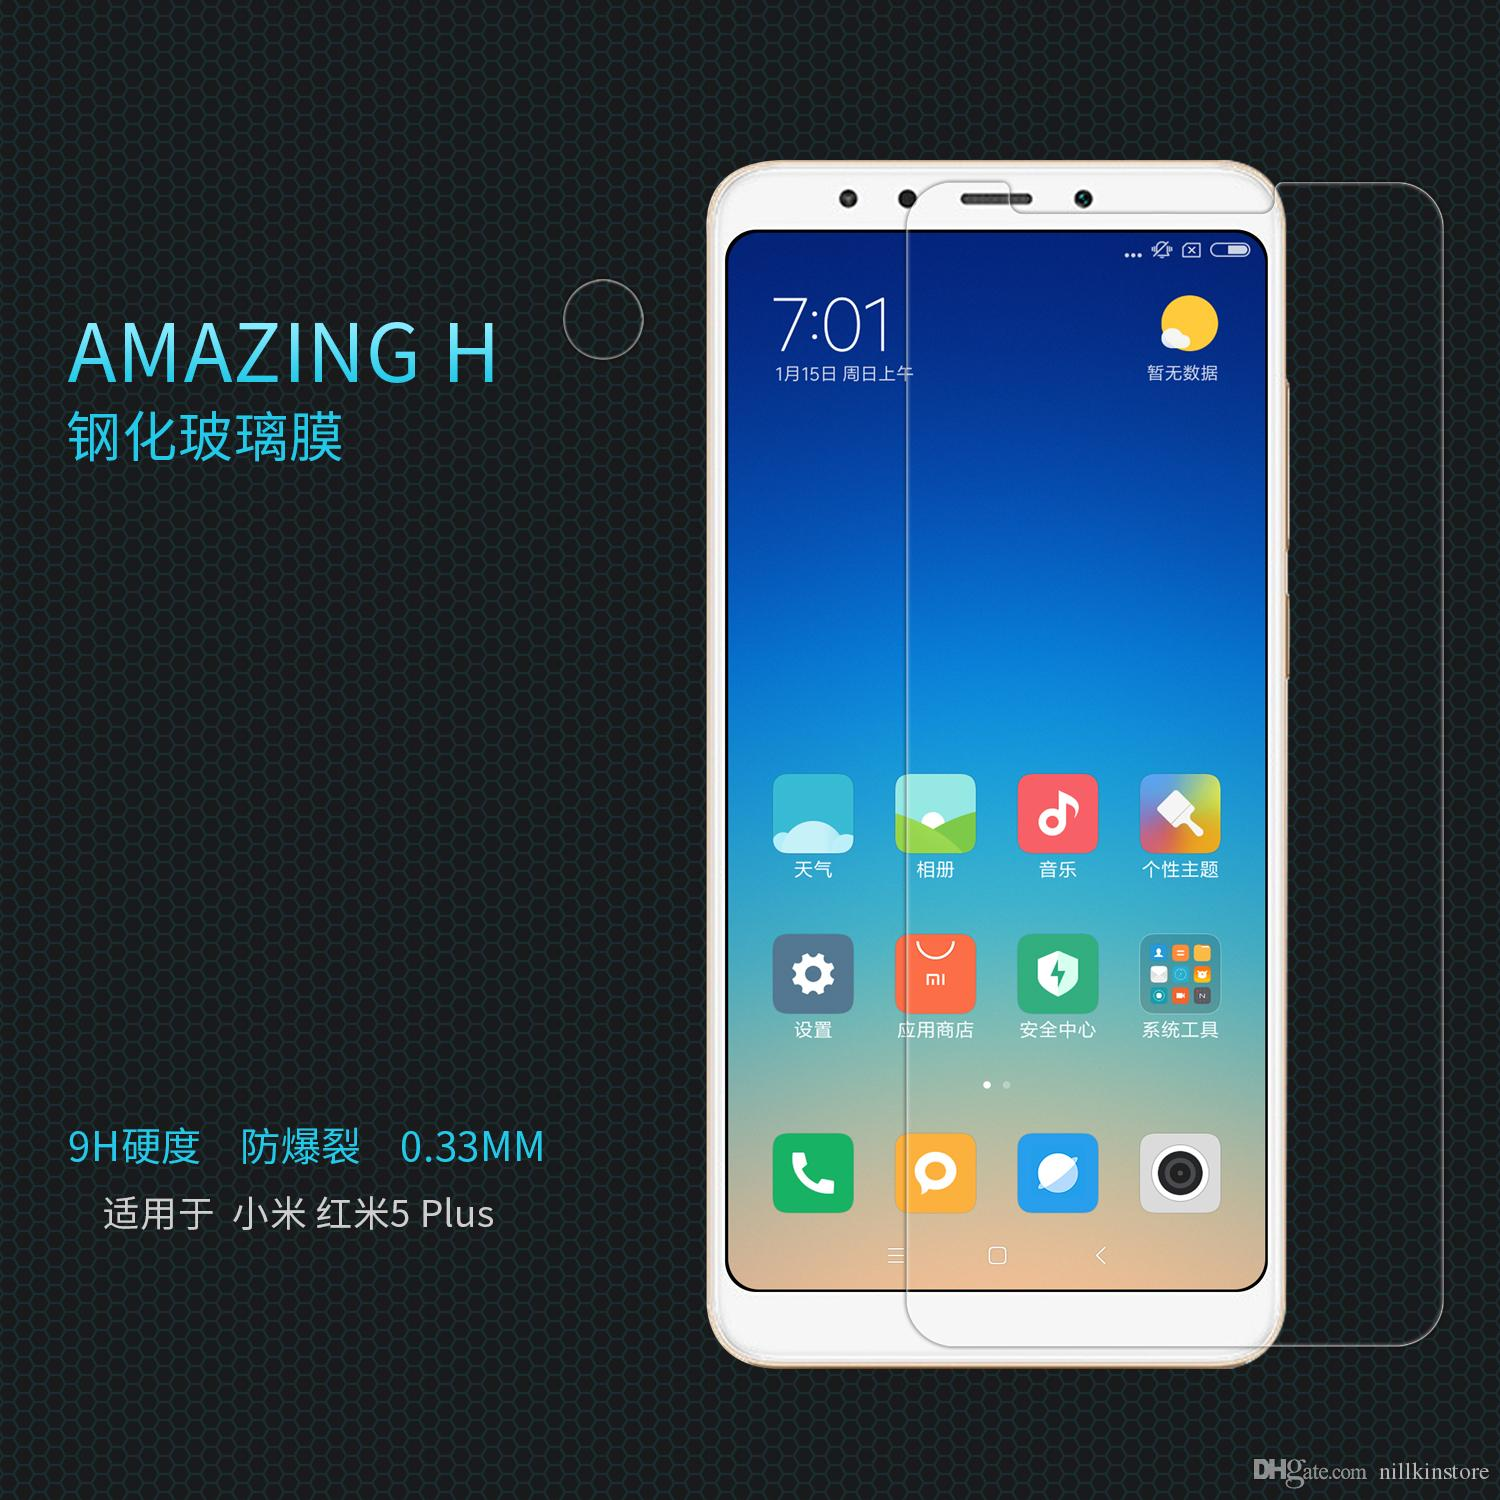 Wholesale Nillkin For Xiaomi Redmi 5 Plus Amazing H Tempered Glass My User Oppo F1 Clear Screen Protector Film Nano Coated Protective